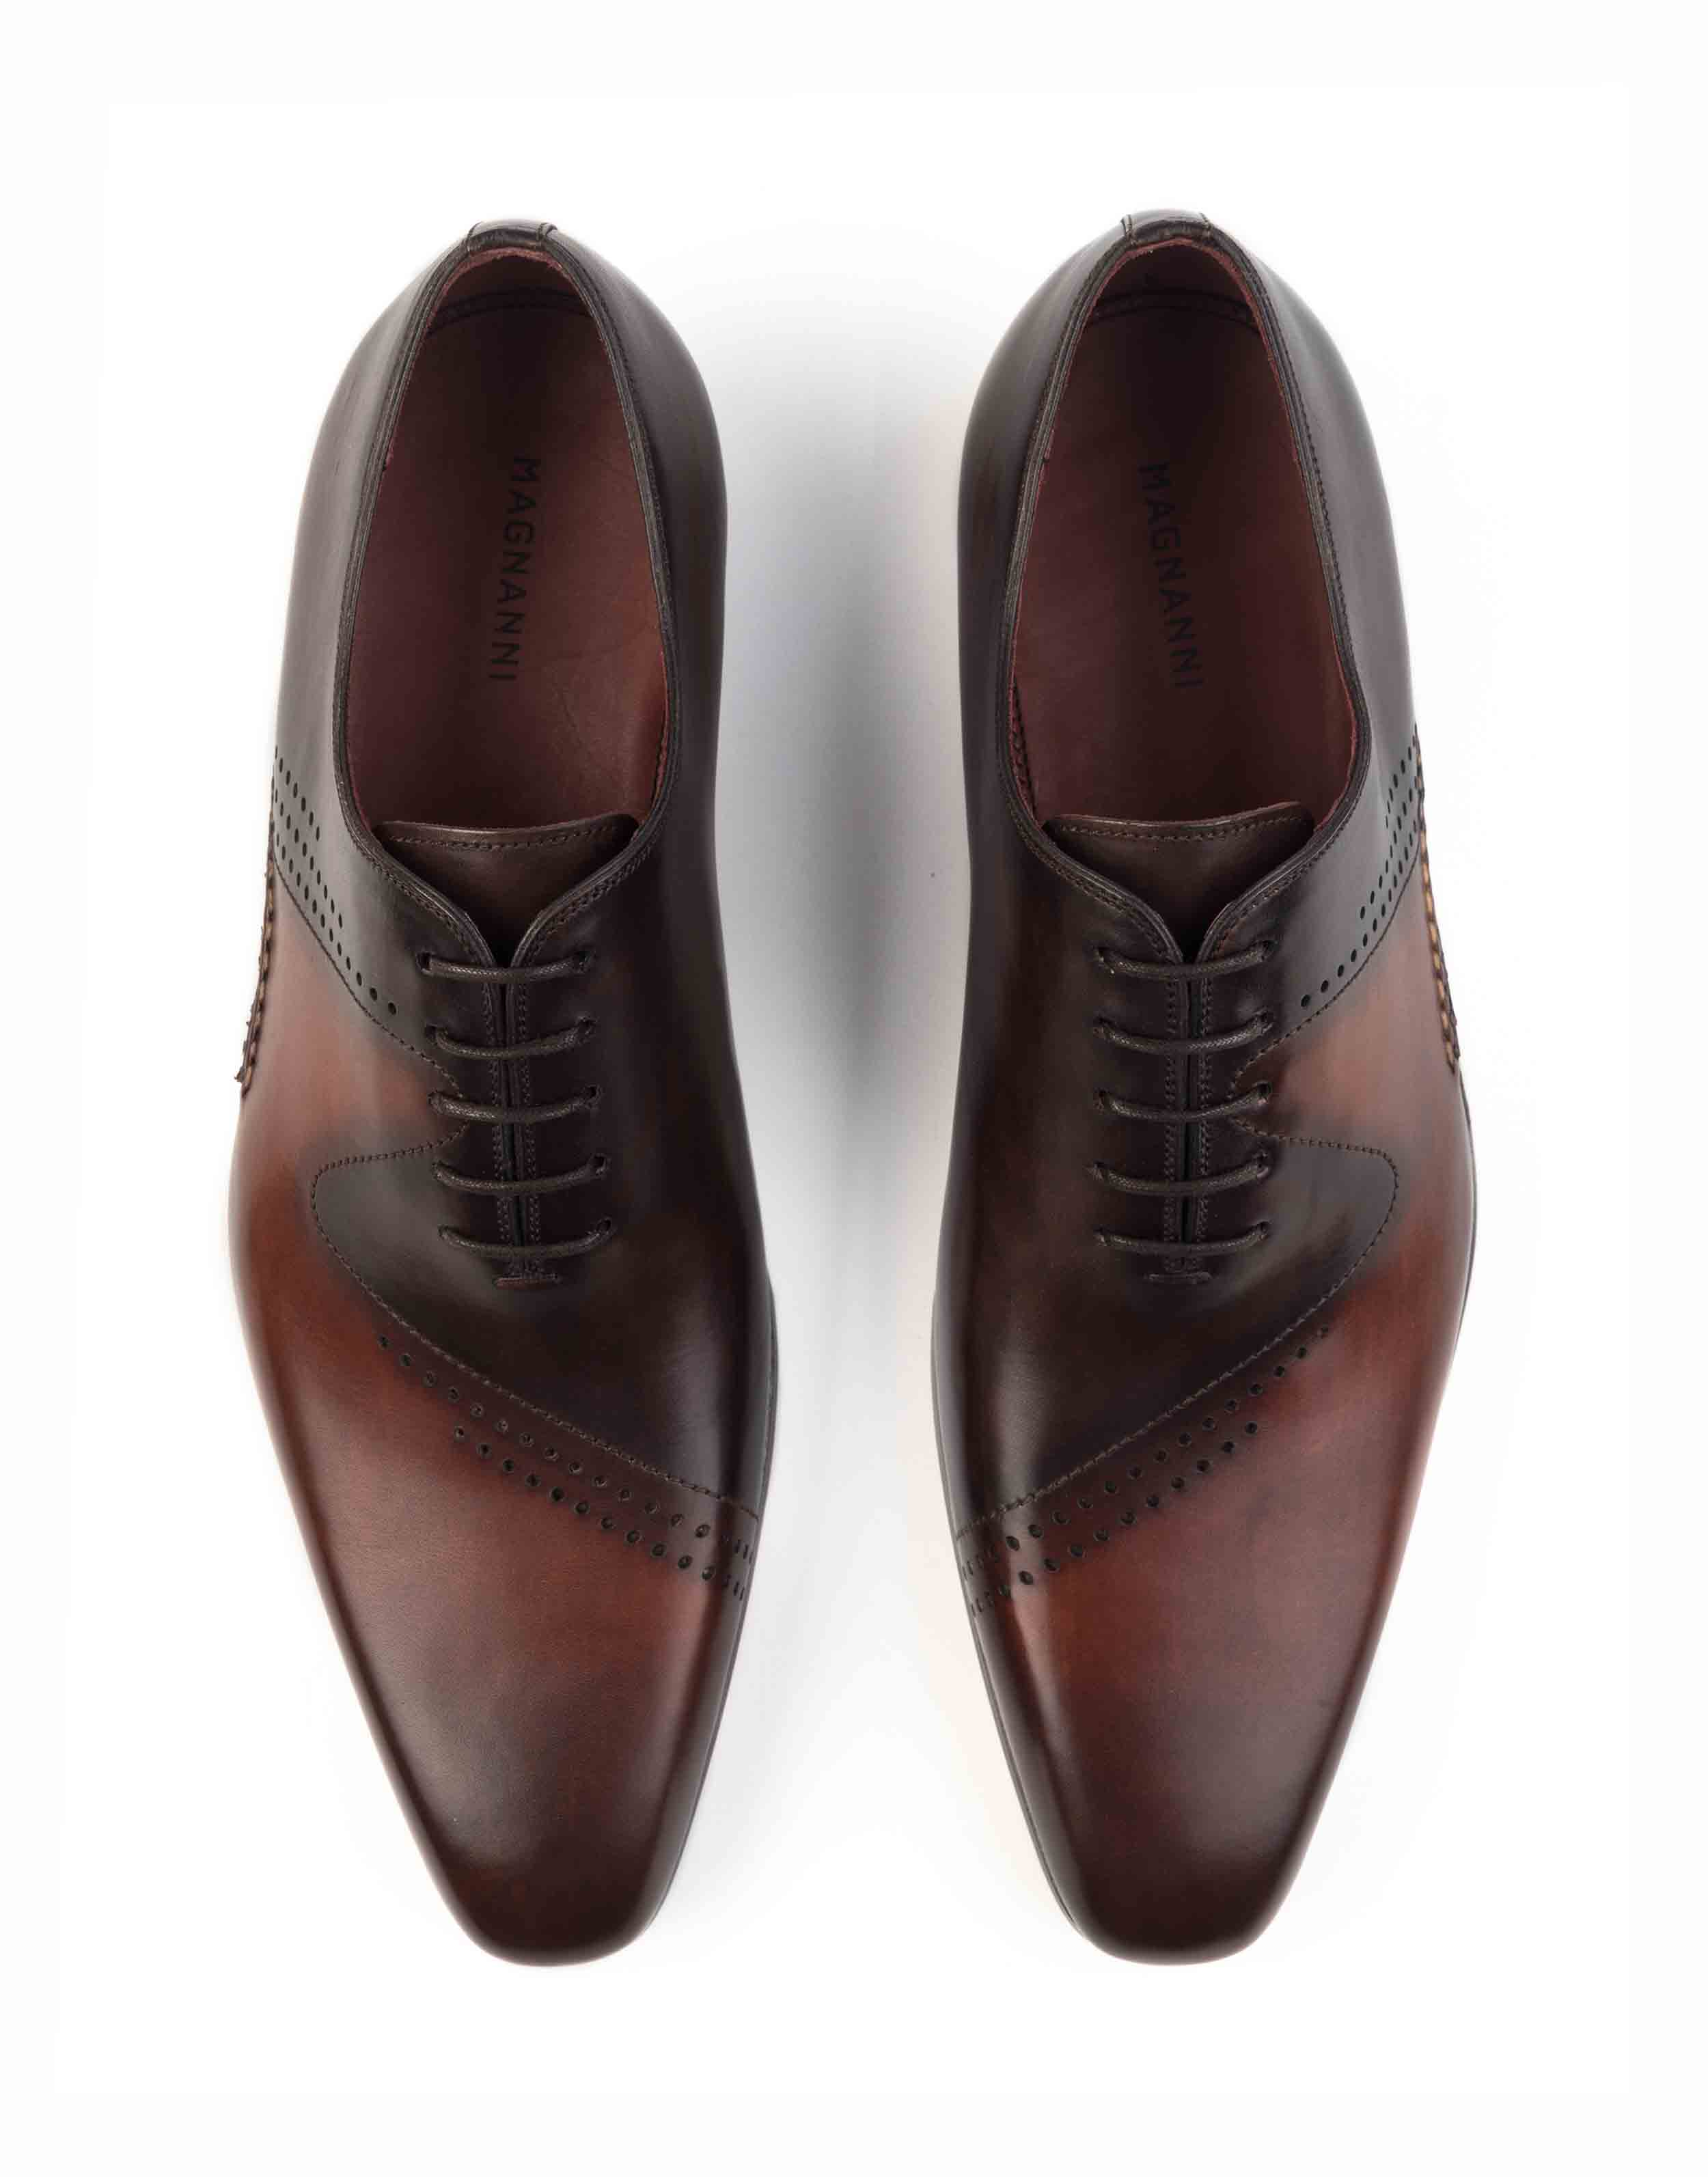 COGNAC AND BROWN OXFORD SHOE4